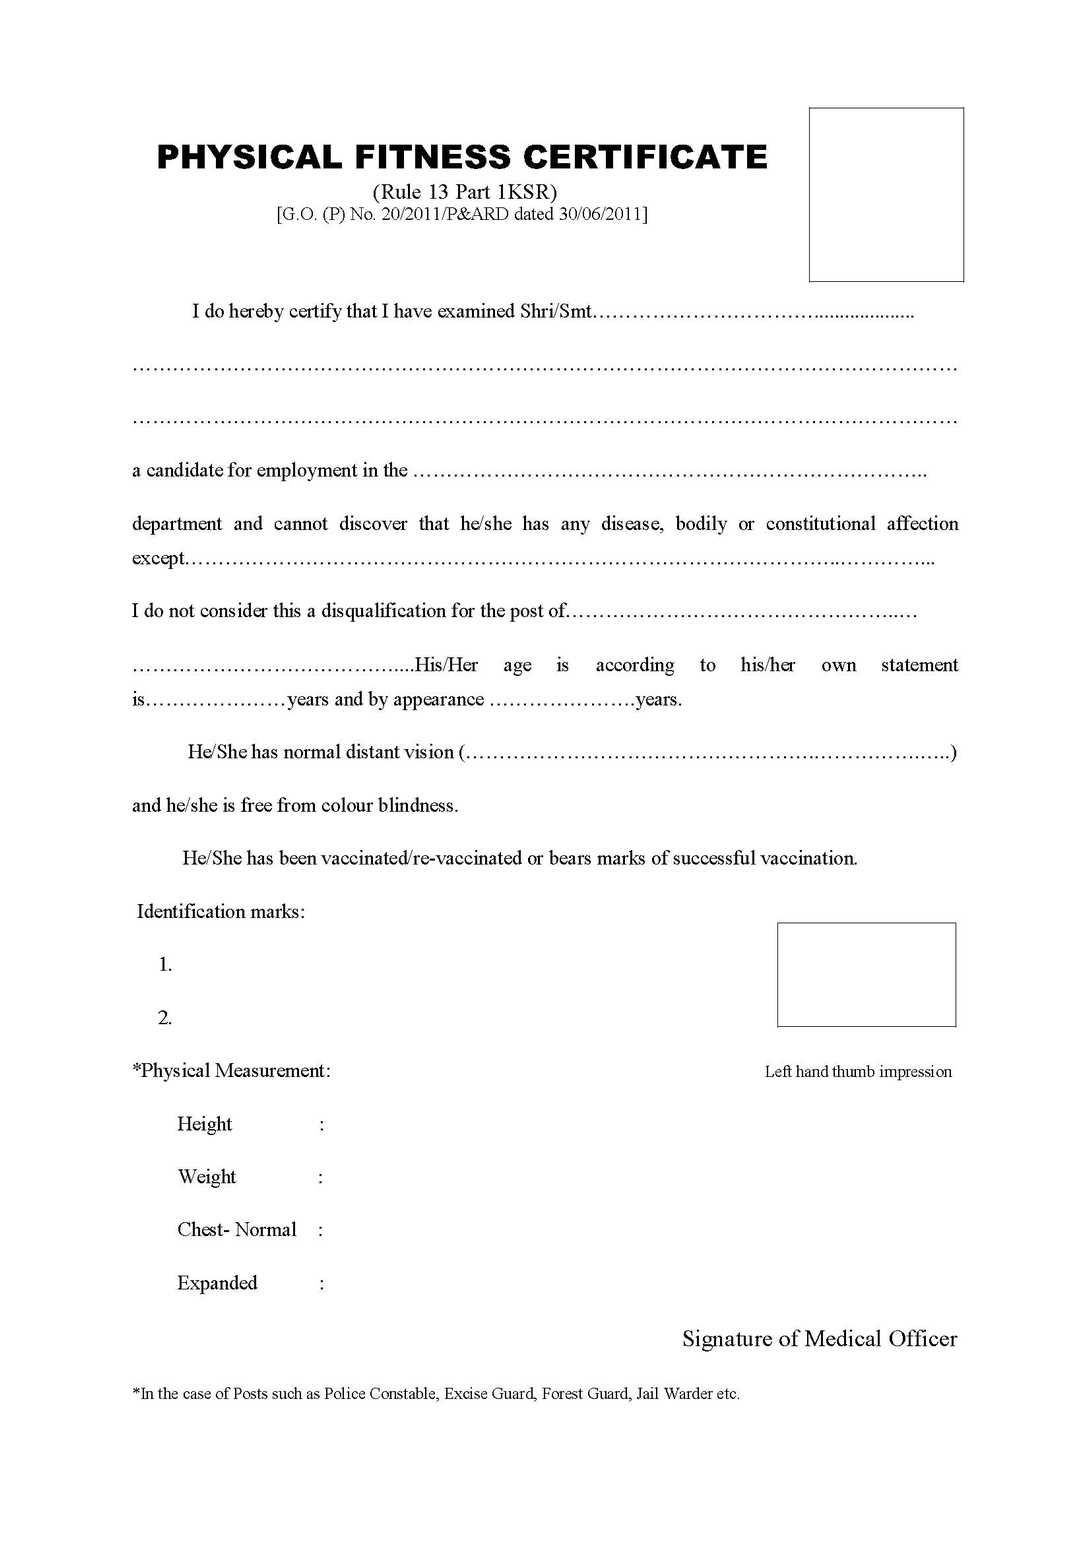 Image Result For Physical Fitness Certificate Format